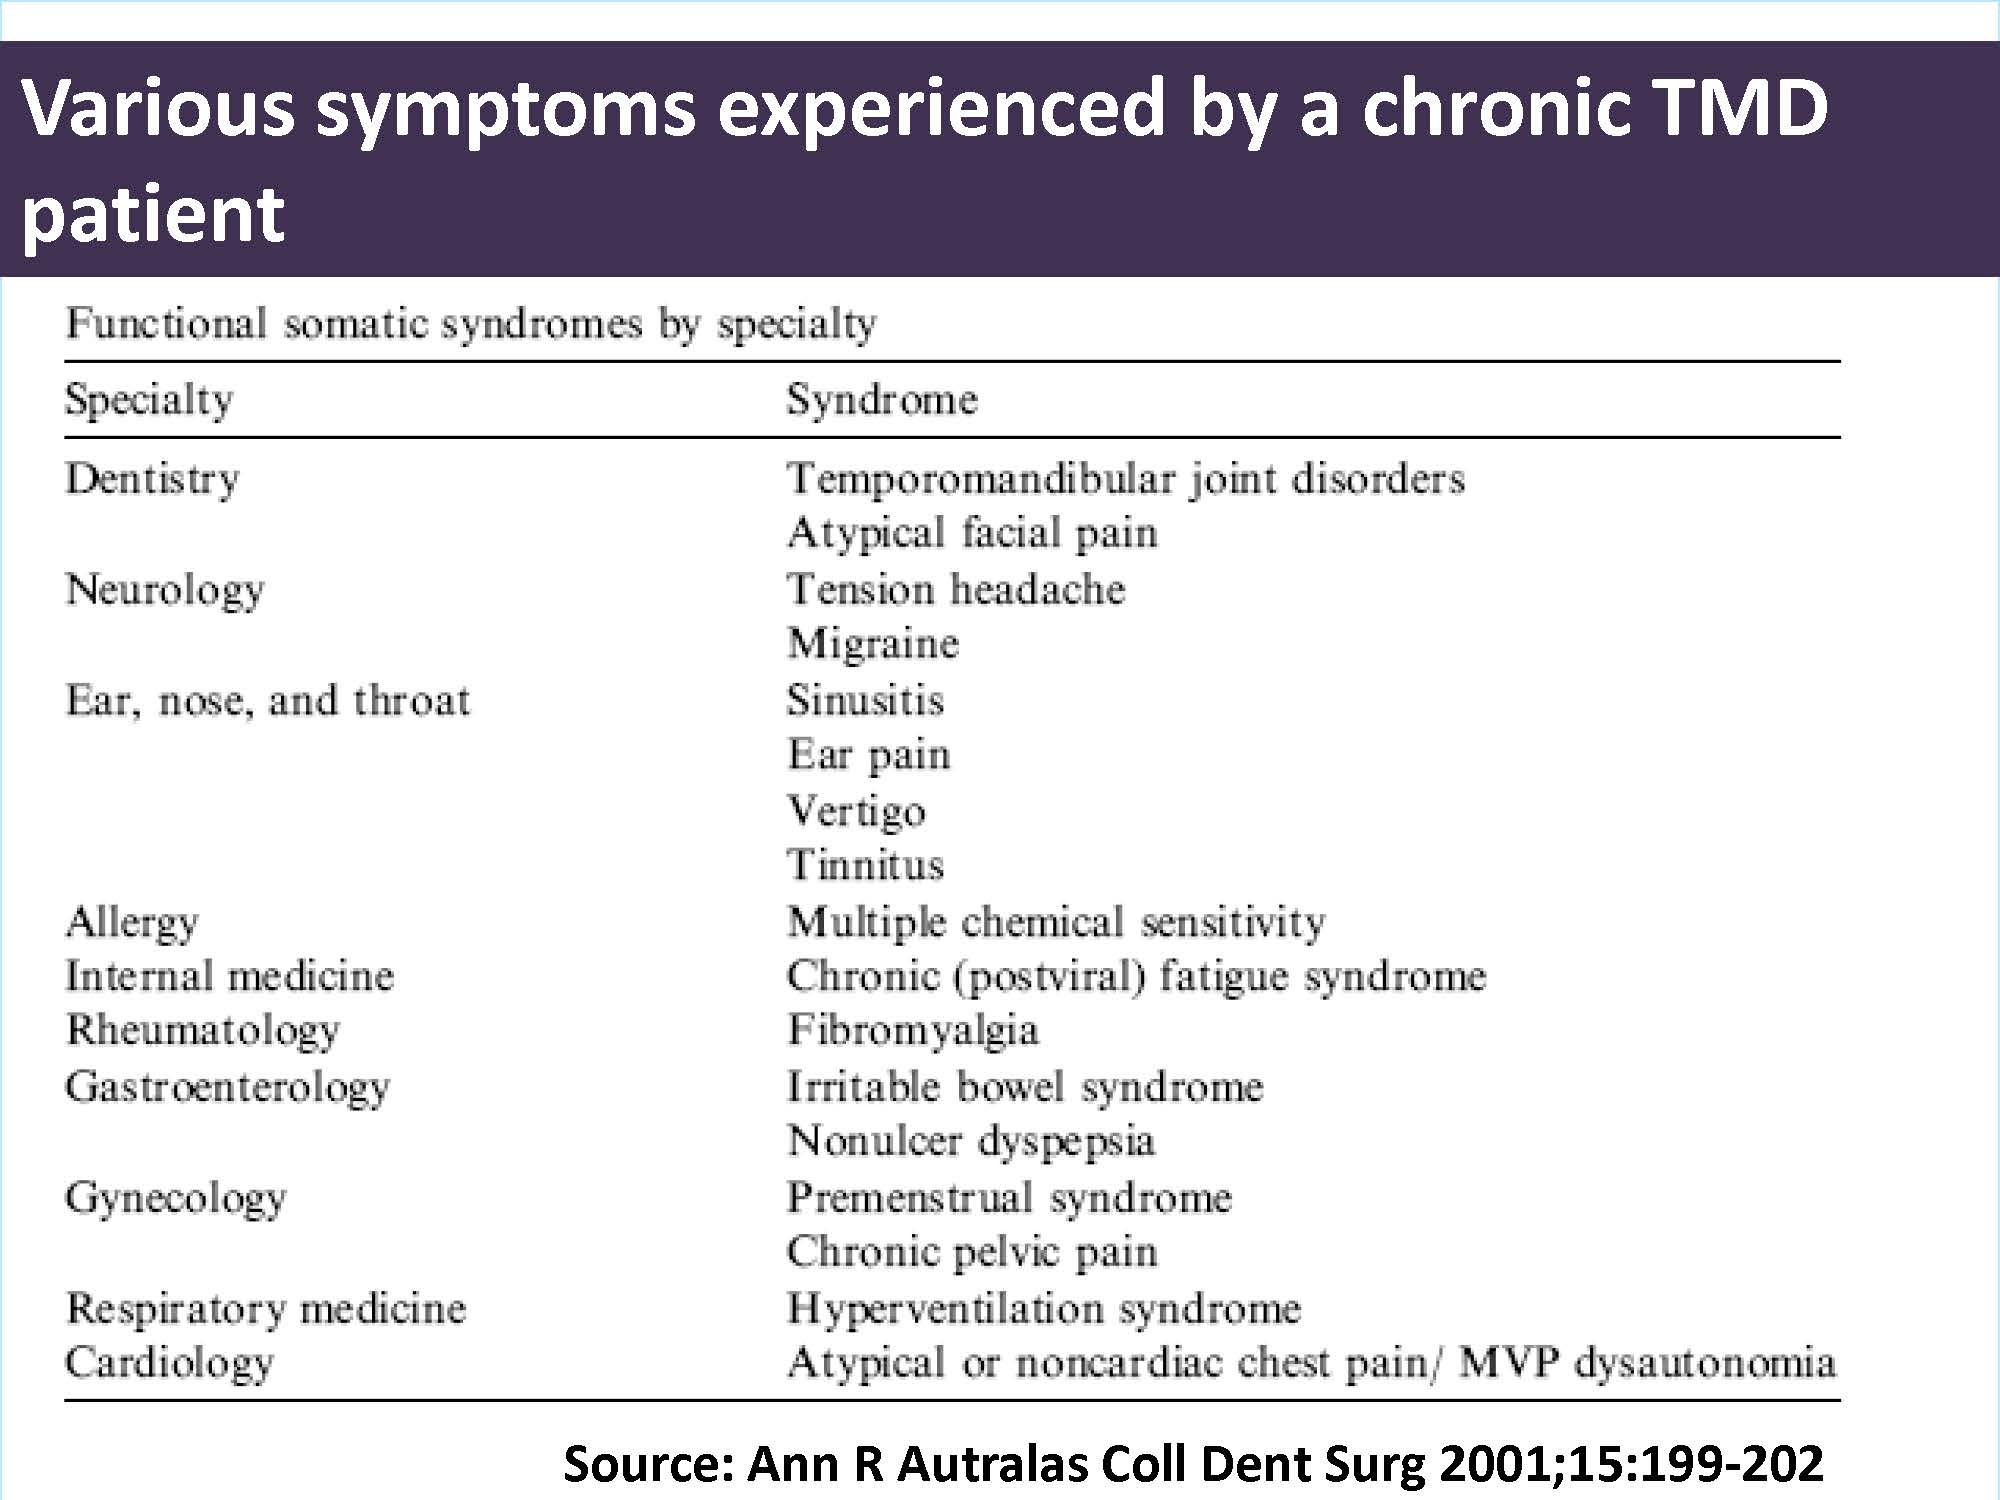 chronic-tmd-symptoms_page_2 (1)